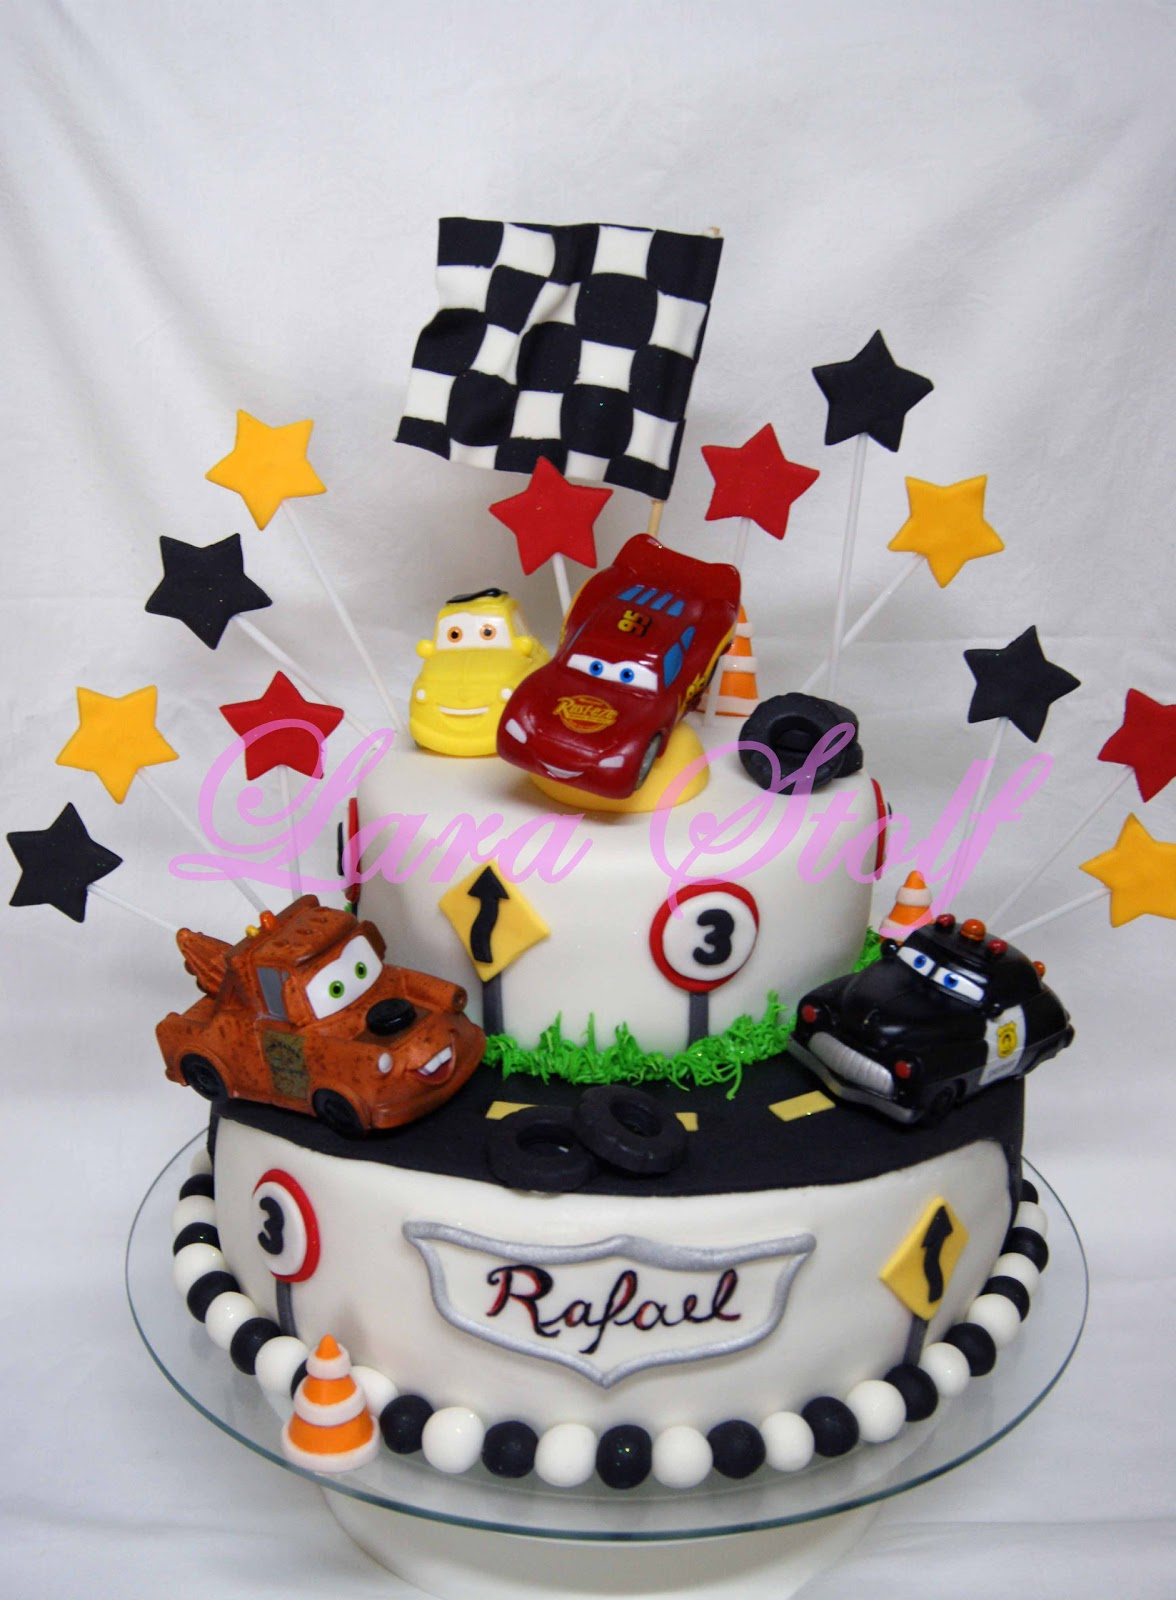 Bjs Cakes Cake Ideas and Designs